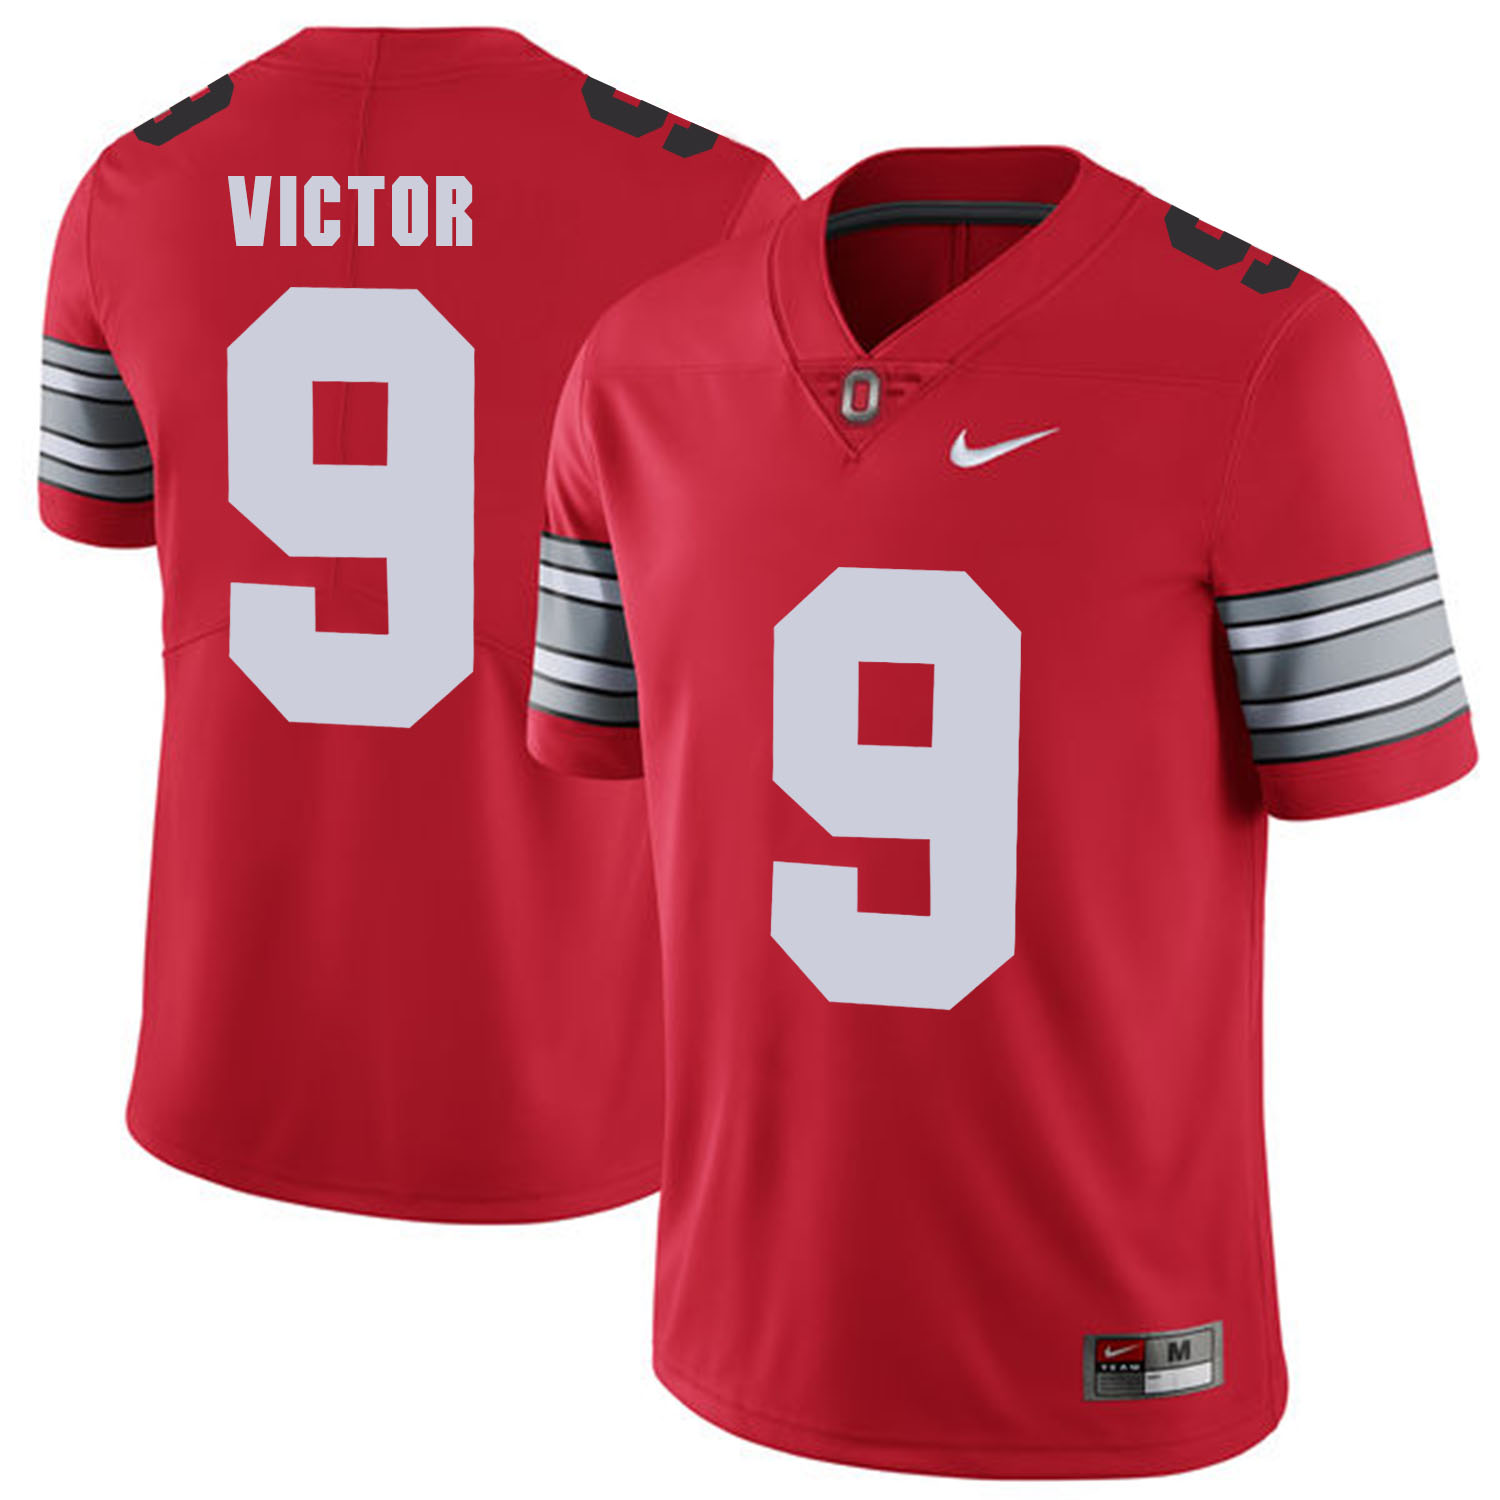 Men Ohio State 9 Victor Red Customized NCAA Jerseys